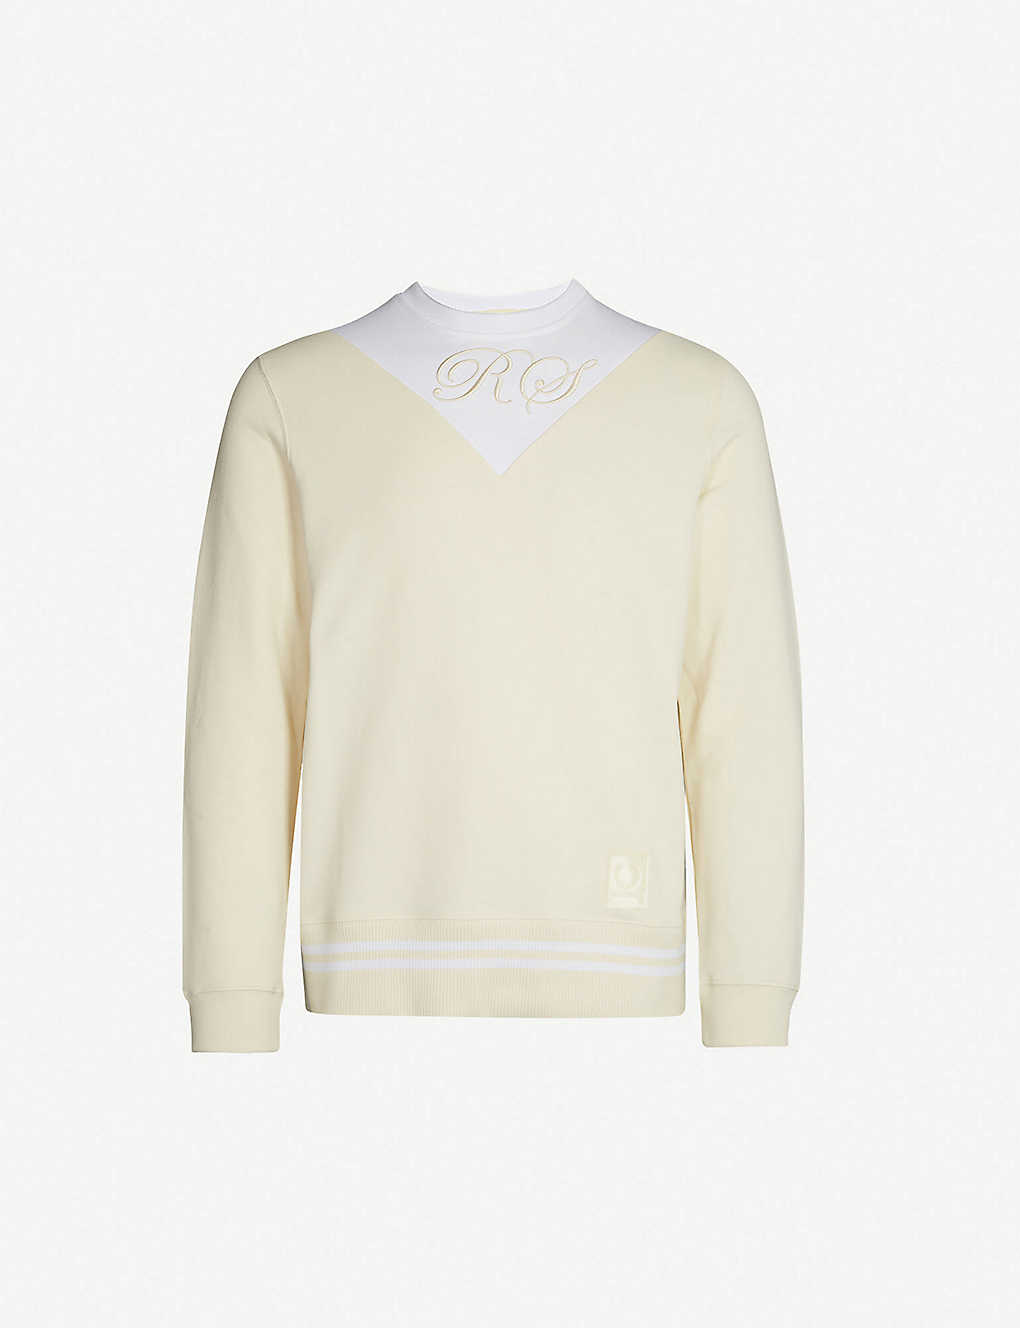 b65051e82 RAF SIMONS X FRED PERRY - Logo-embroidered cotton-jersey sweatshirt ...